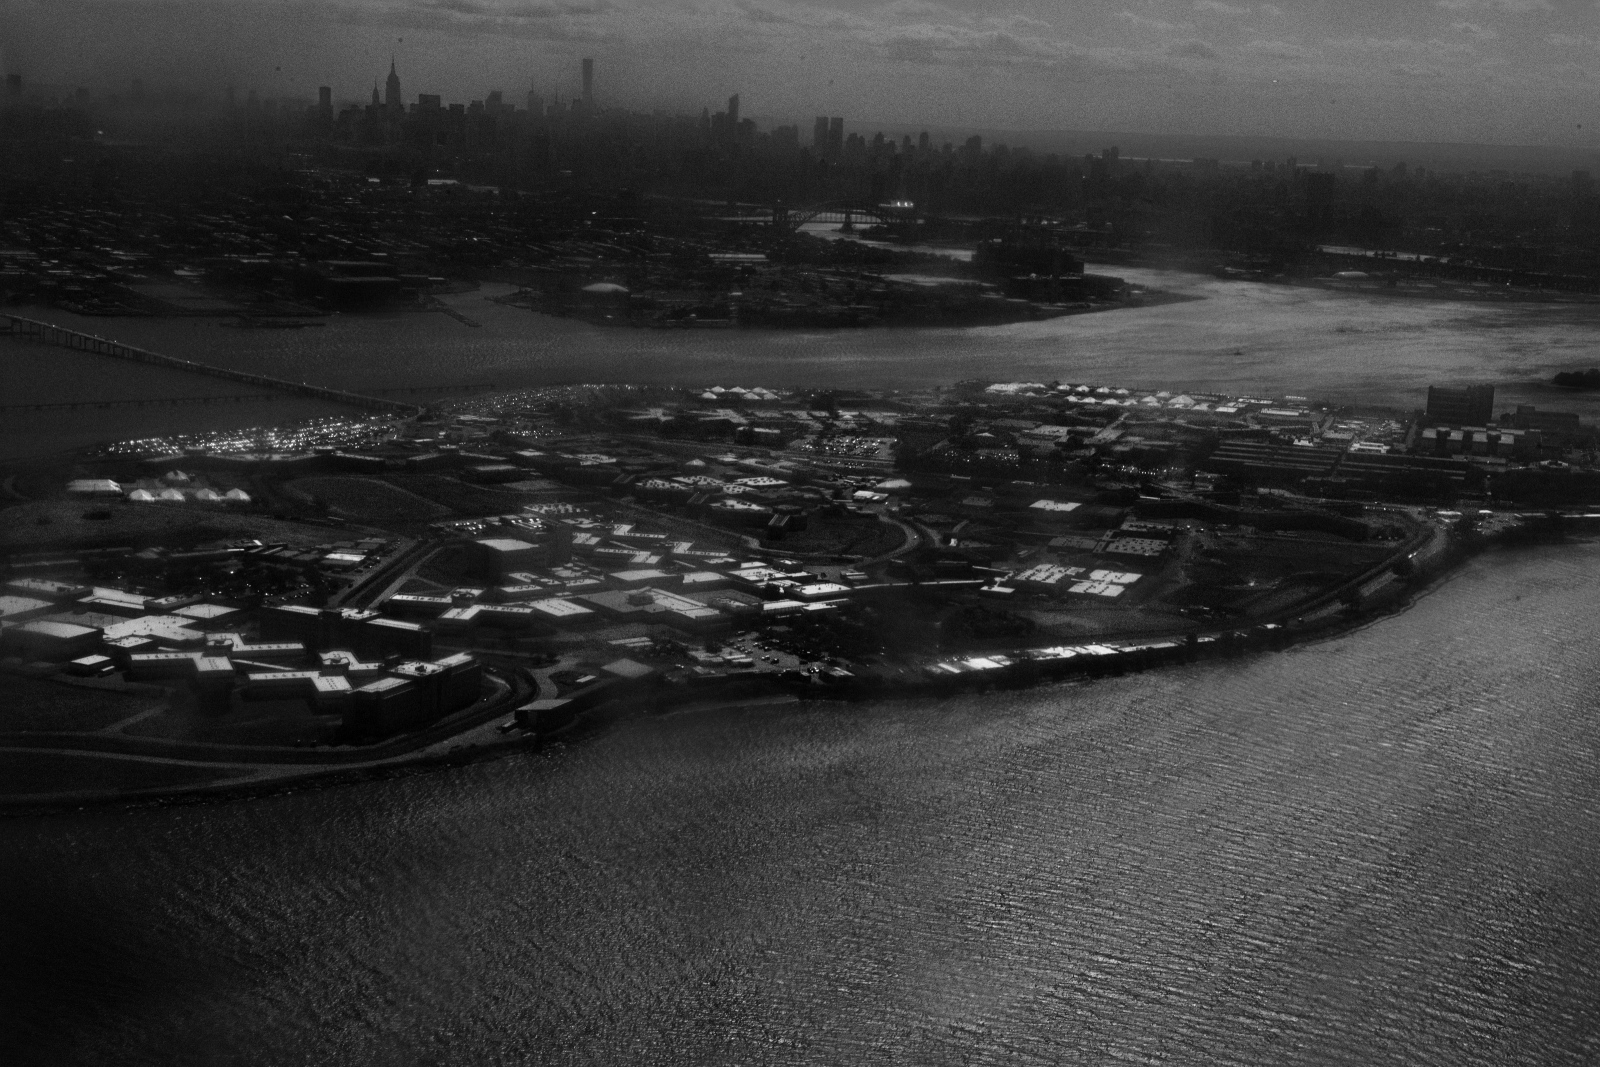 Rikers Island as seen from a plane that departed from La Guardia Airport. A clear view of the island is hardto get from anywhere in the city but thousands of people who land and depart each day from La Guardia get a clearoverview of it many times without knowing what the island is.June 9th, 2016.